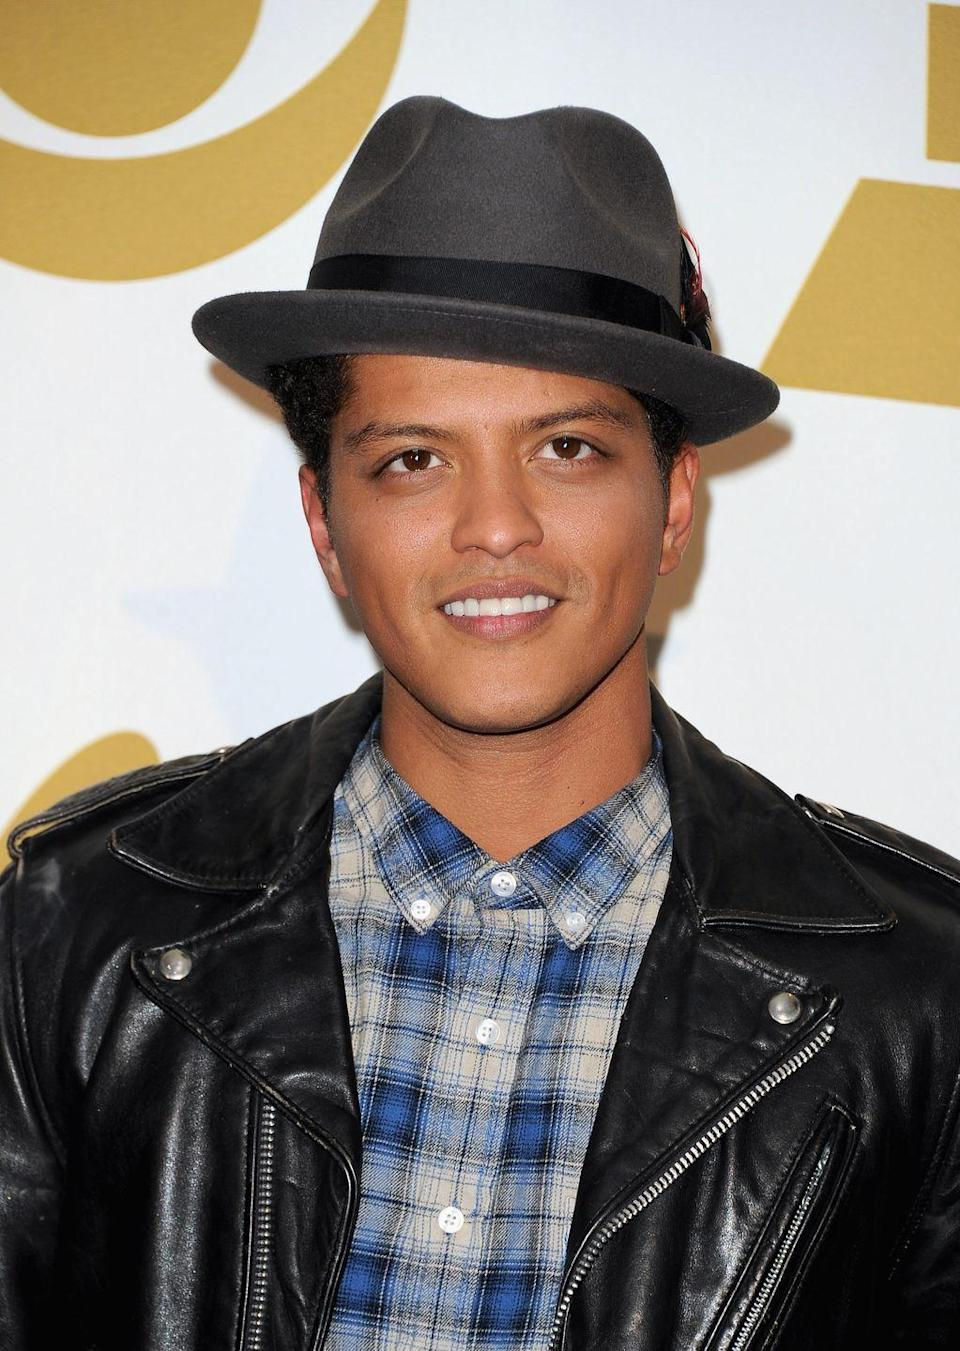 <p>When Bruno Mars entered the scene, his melodic songs and retro style was part of his widespread appeal. The singer channeled old-fashioned crooners, sporting fedoras at almost every single event. Now we can't look at a fedora without thinking of Mars. </p>